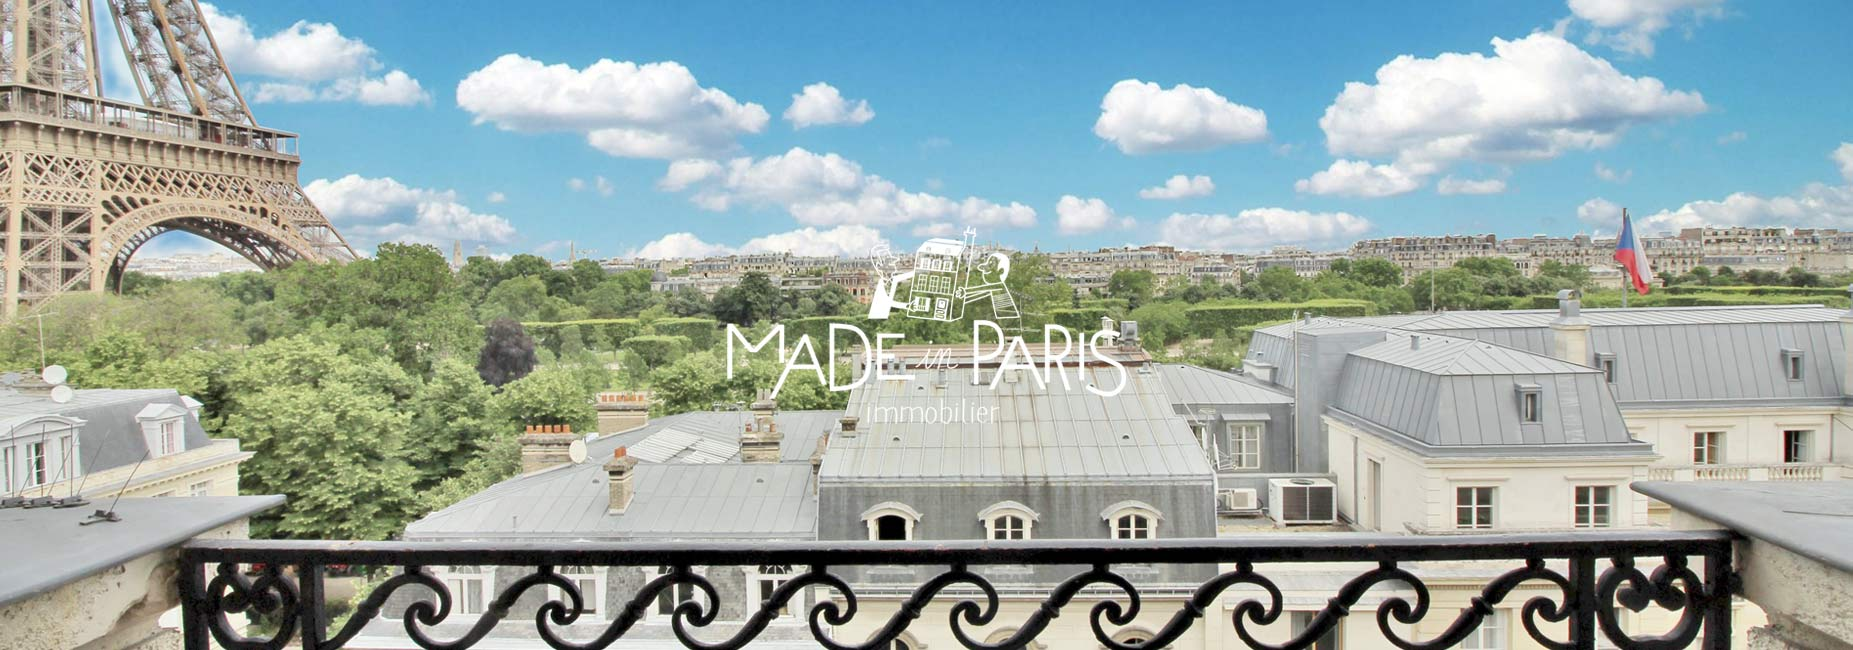 Made-in-Paris-immobilier-slider-agence-immobiliere-appartement-tour-eiffel